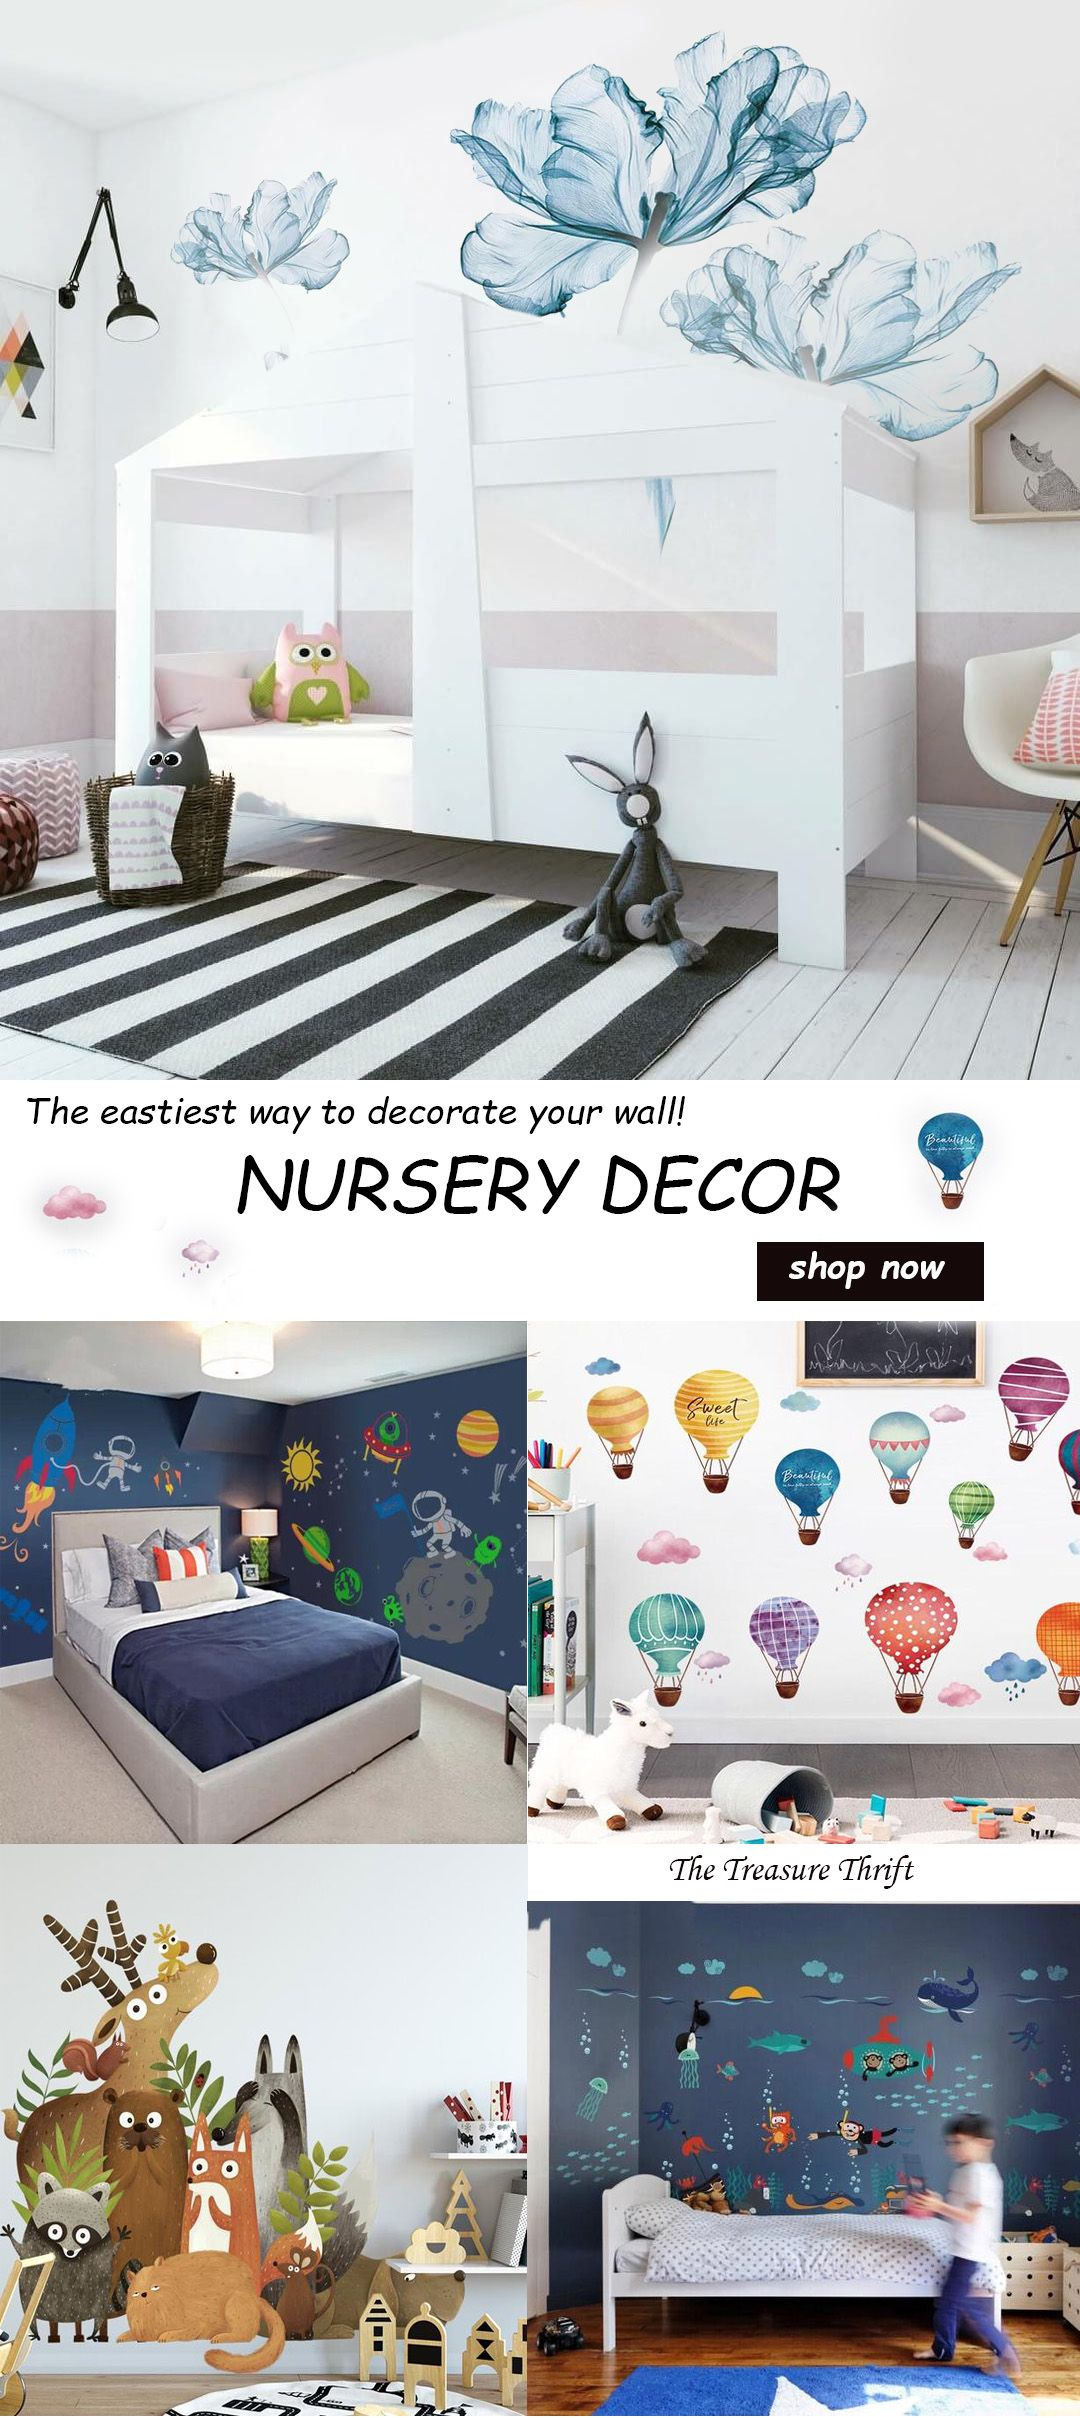 Decor Ideas For Baby Nursery, Bedroom And Playroom! Peel And Stick